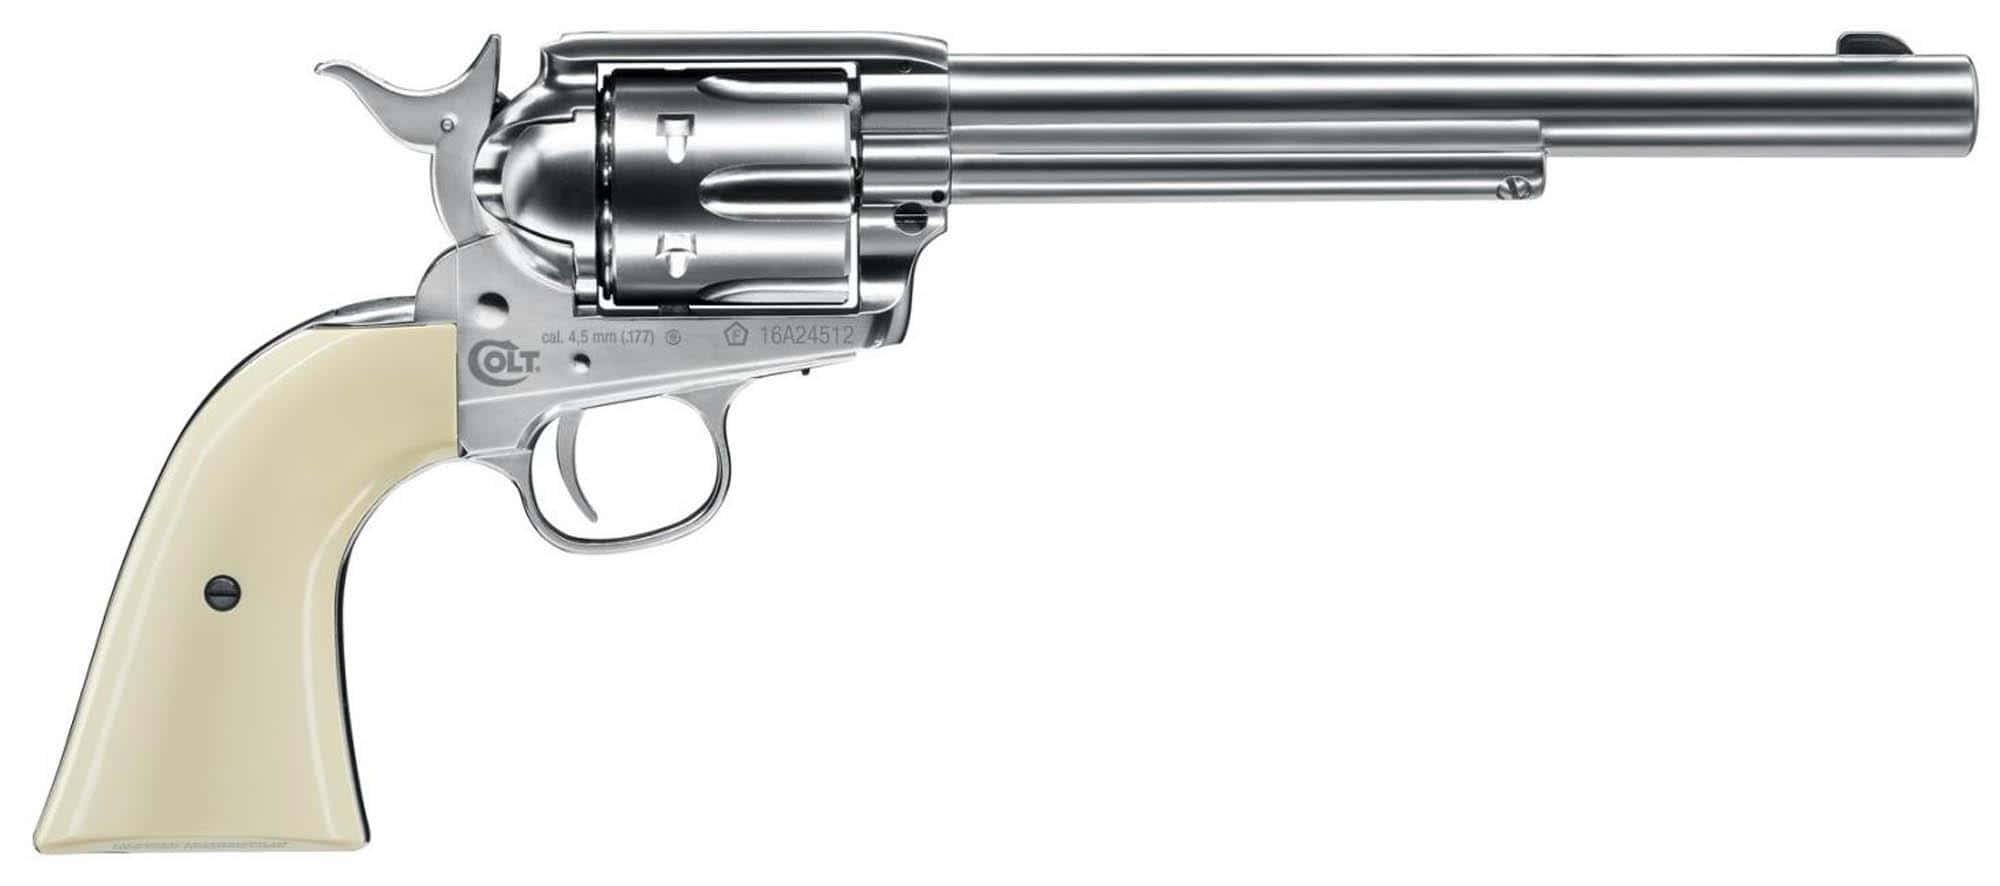 ACP202-2-Revolver Airgun Colt single action .45 nickel - UMAREX - ACP202